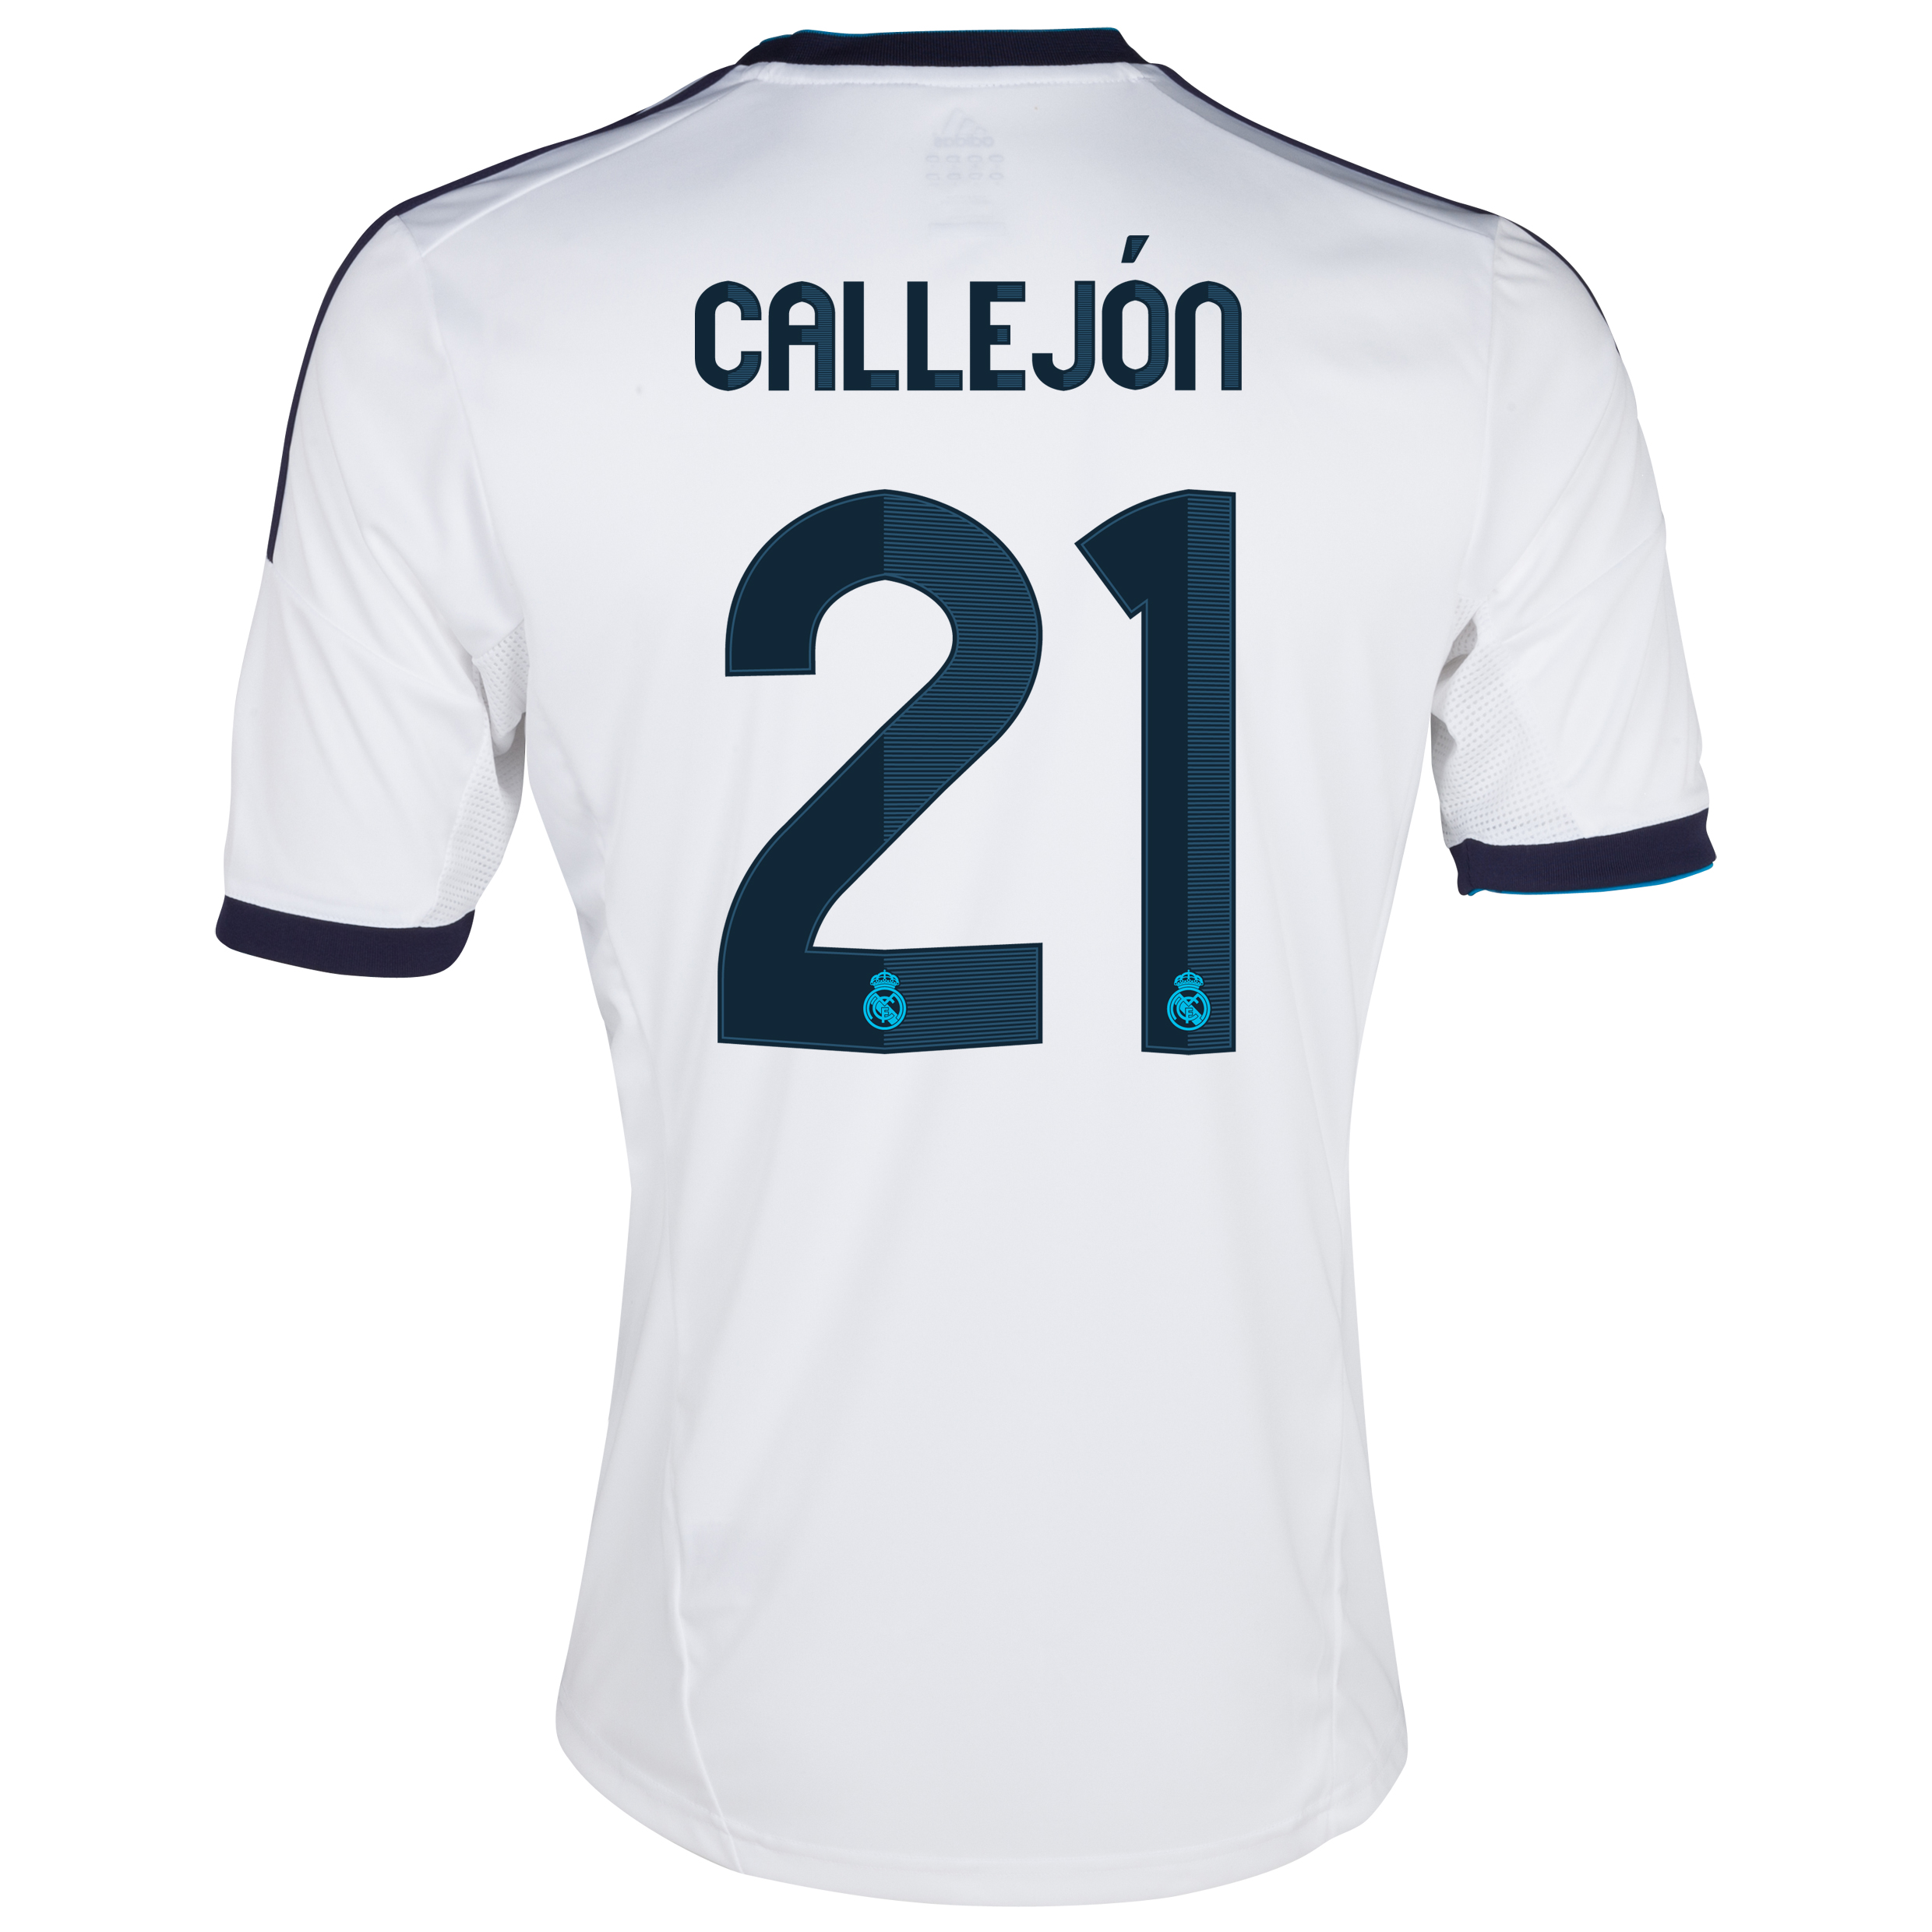 Real Madrid Home Shirt 2012/13 - Youths with Callejón 21 printing